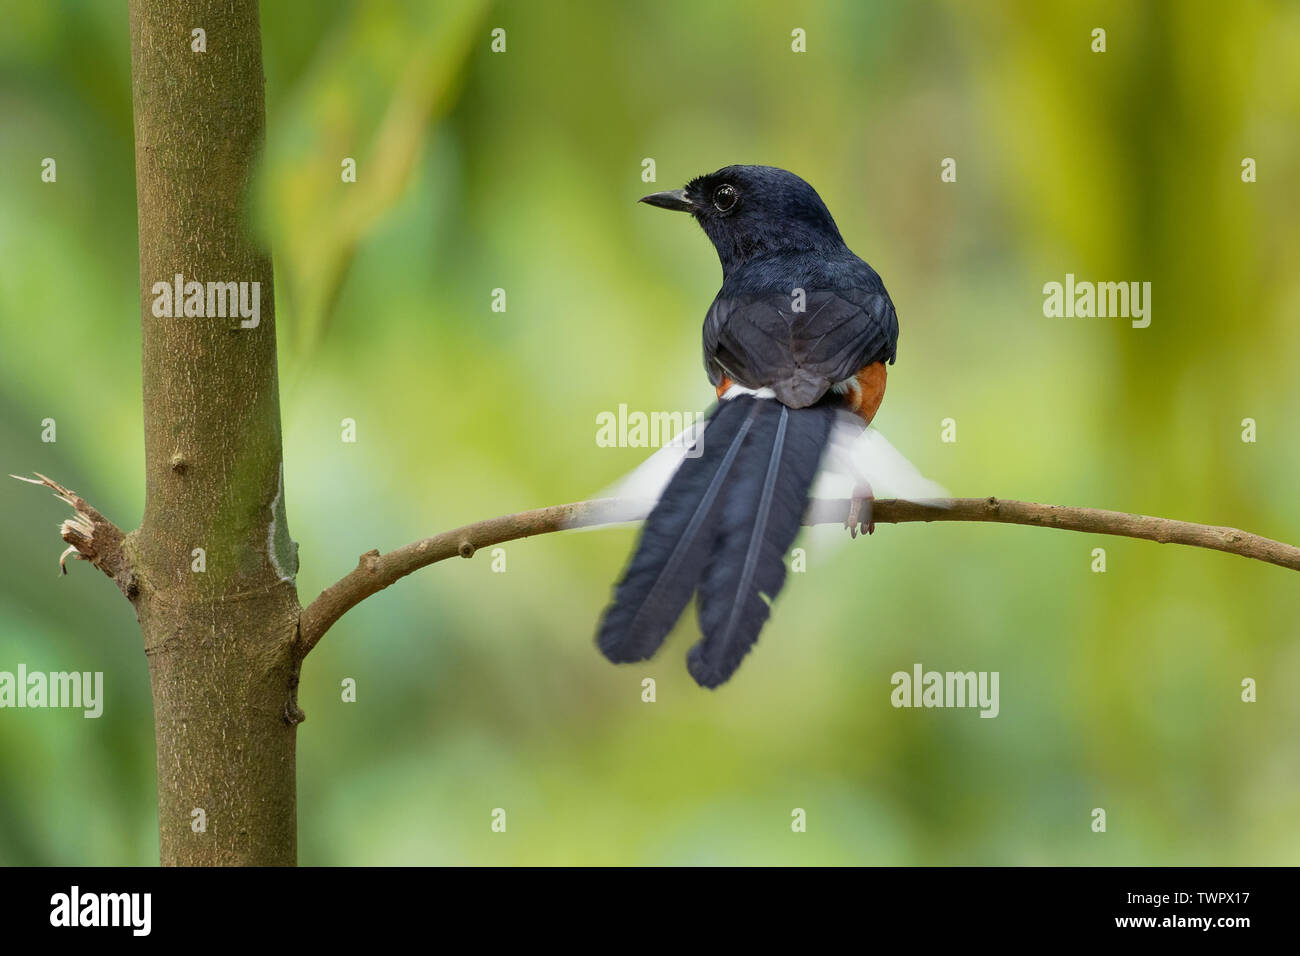 White-rumped Shama - Copsychus malabaricus small passerine bird of the family Muscicapidae. Native to densely vegetated habitats in the Indian subcont - Stock Image